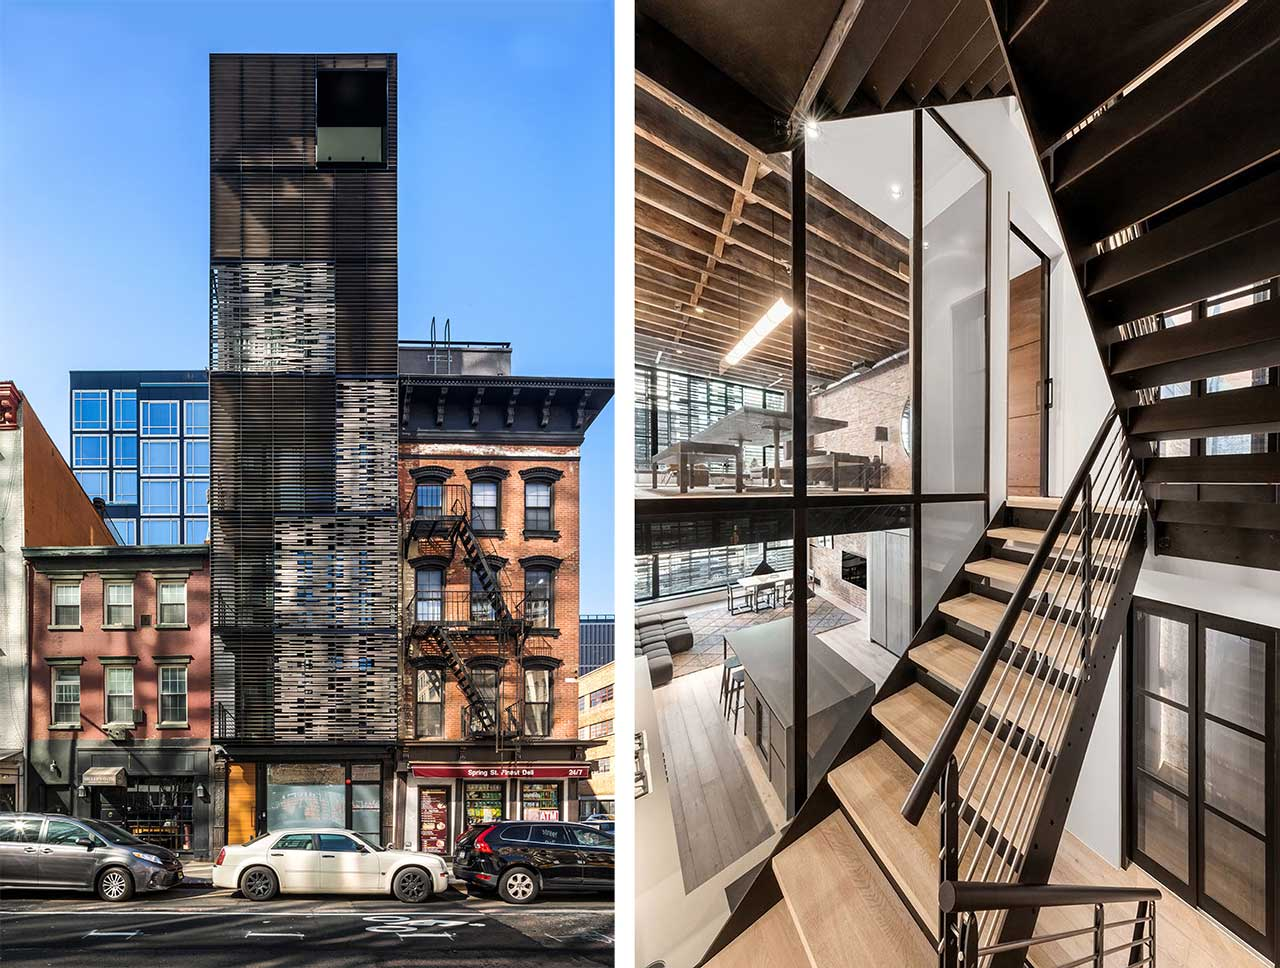 Archi-Tectonics Wraps 8-Story 512GW Townhouse in 3D Envelope in NYC